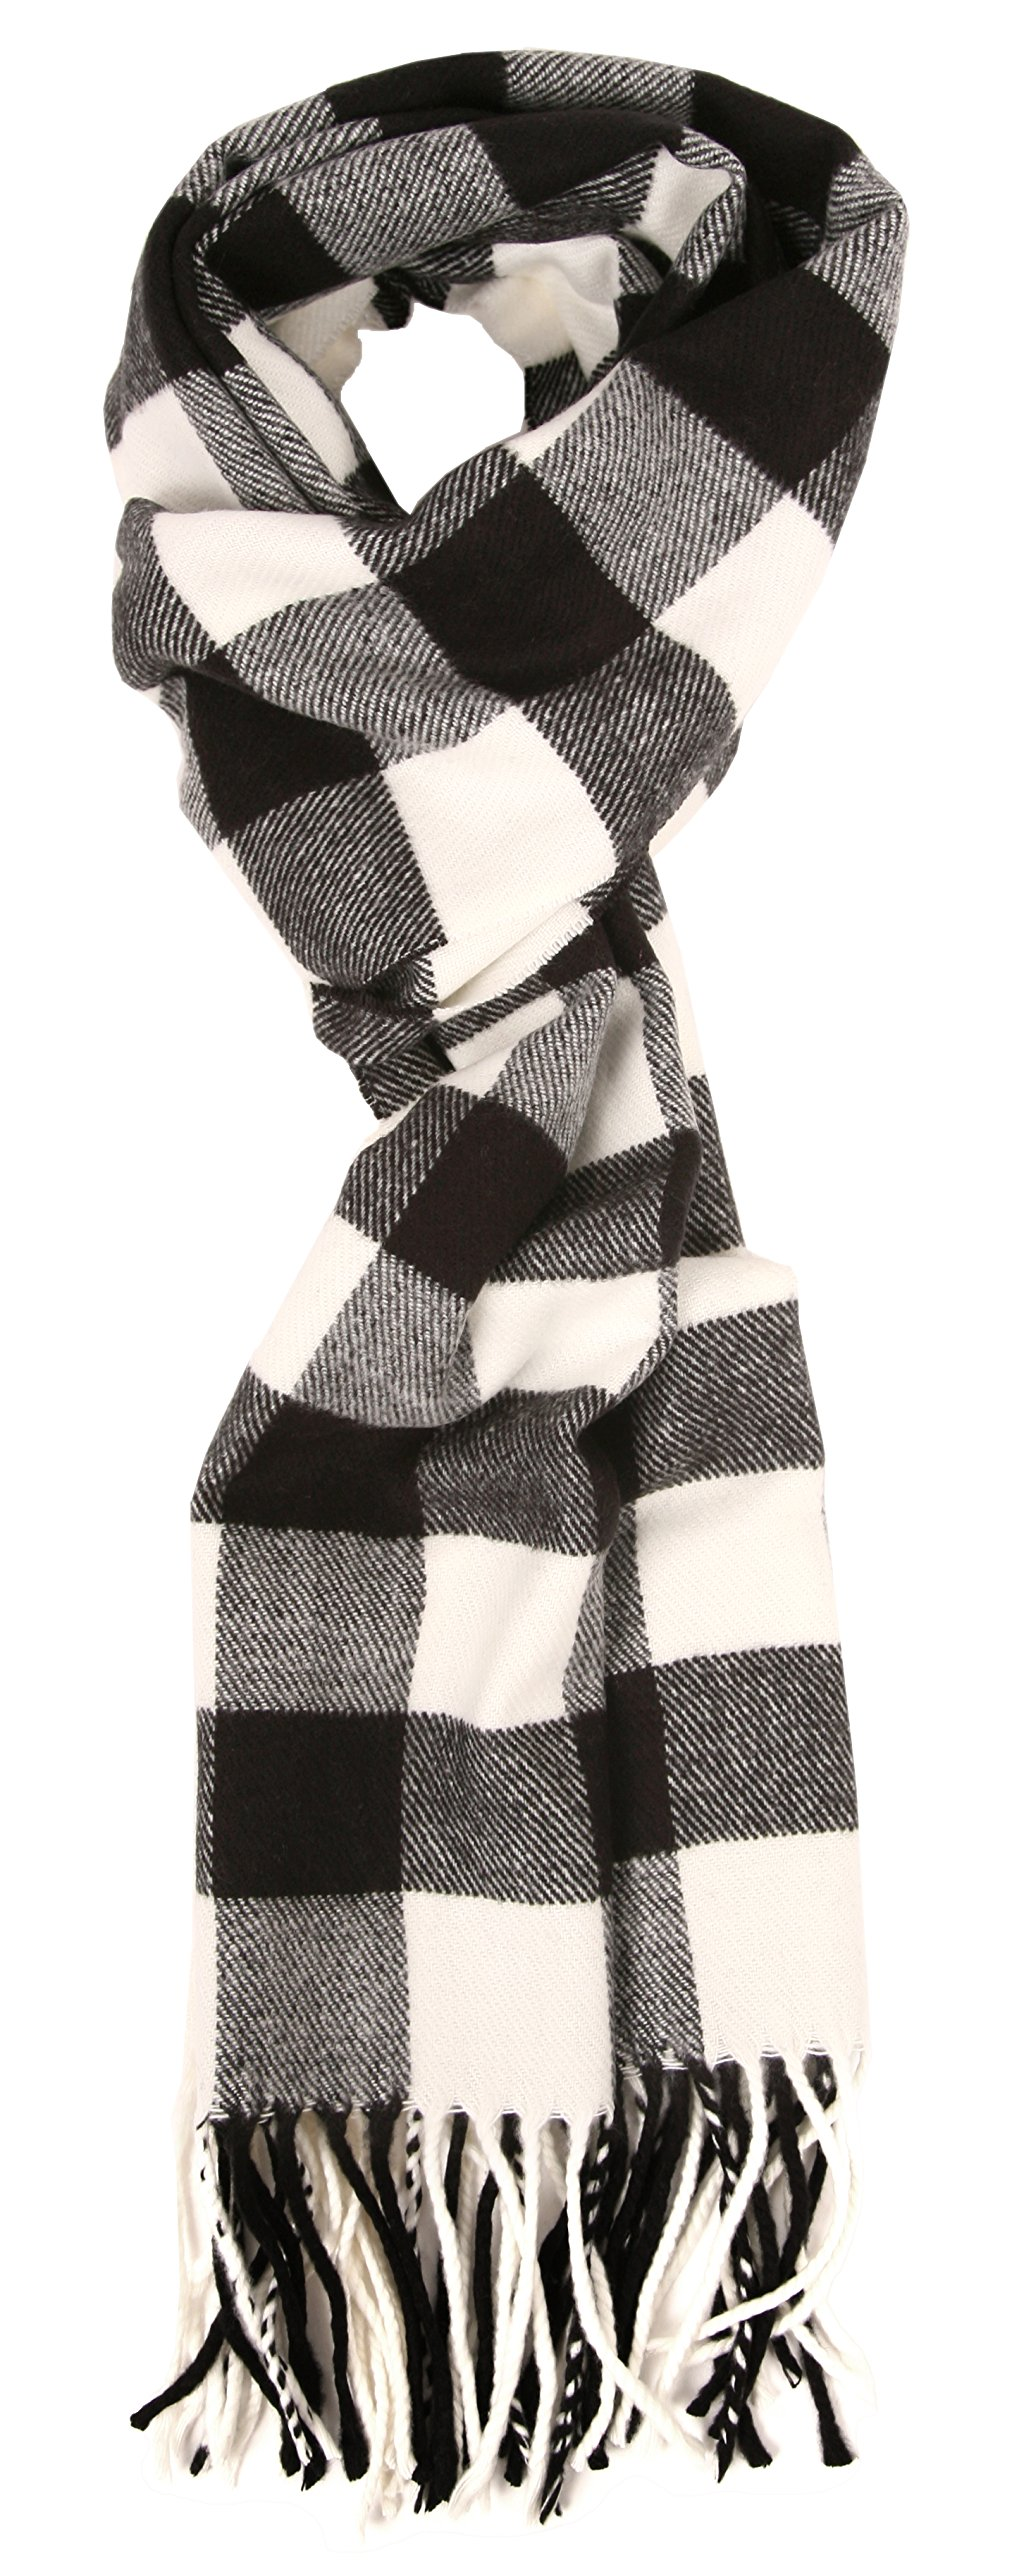 Love Lakeside-Women's Soft Cashmere Feel Winter Plaid Scarf (Black and White Buffalo Check)